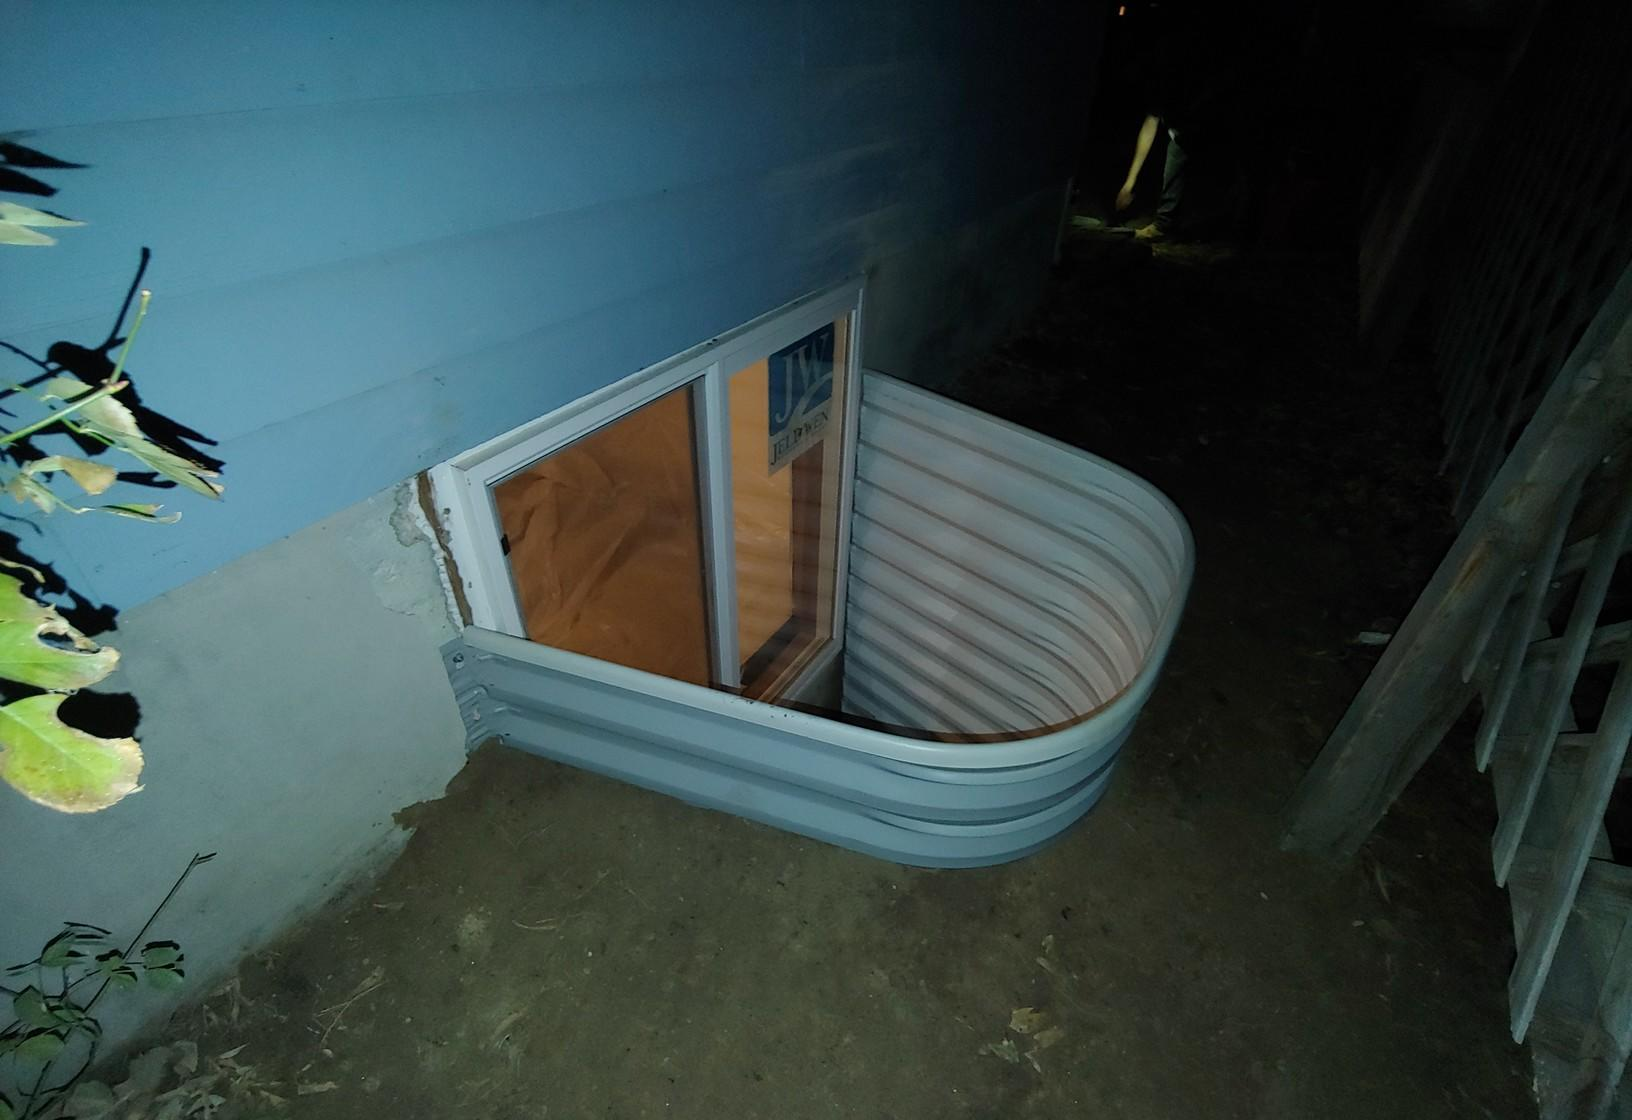 Small basement window converted to an egress window in Pocatello, ID. - After Photo